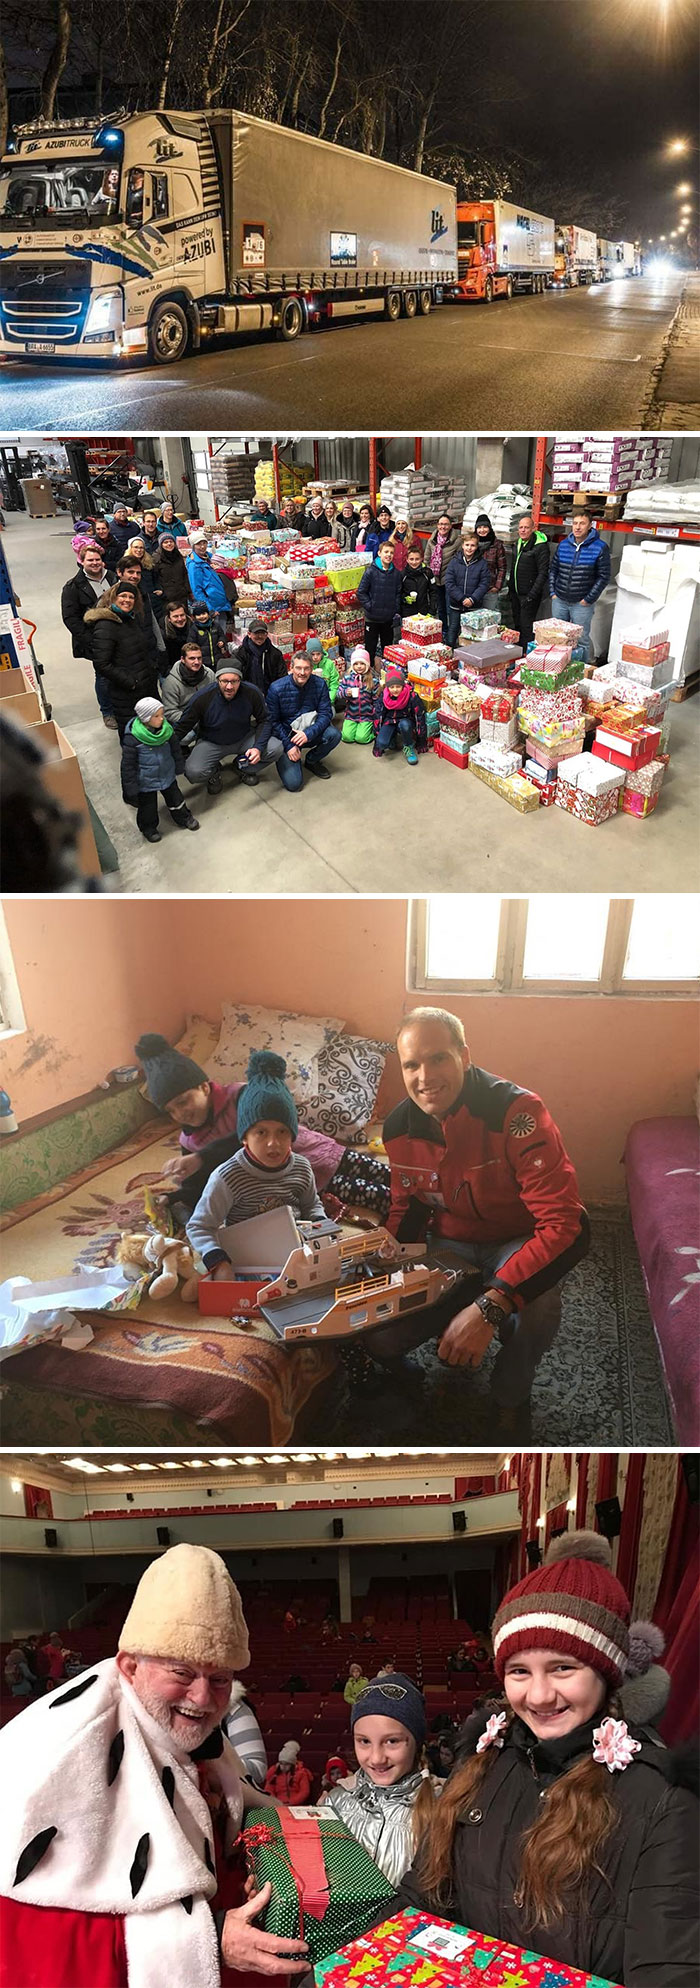 Christmas Gift Convoy: Follow Up With More Stories About The 156,237 Packages We Brought To Kids In Eastern Europe